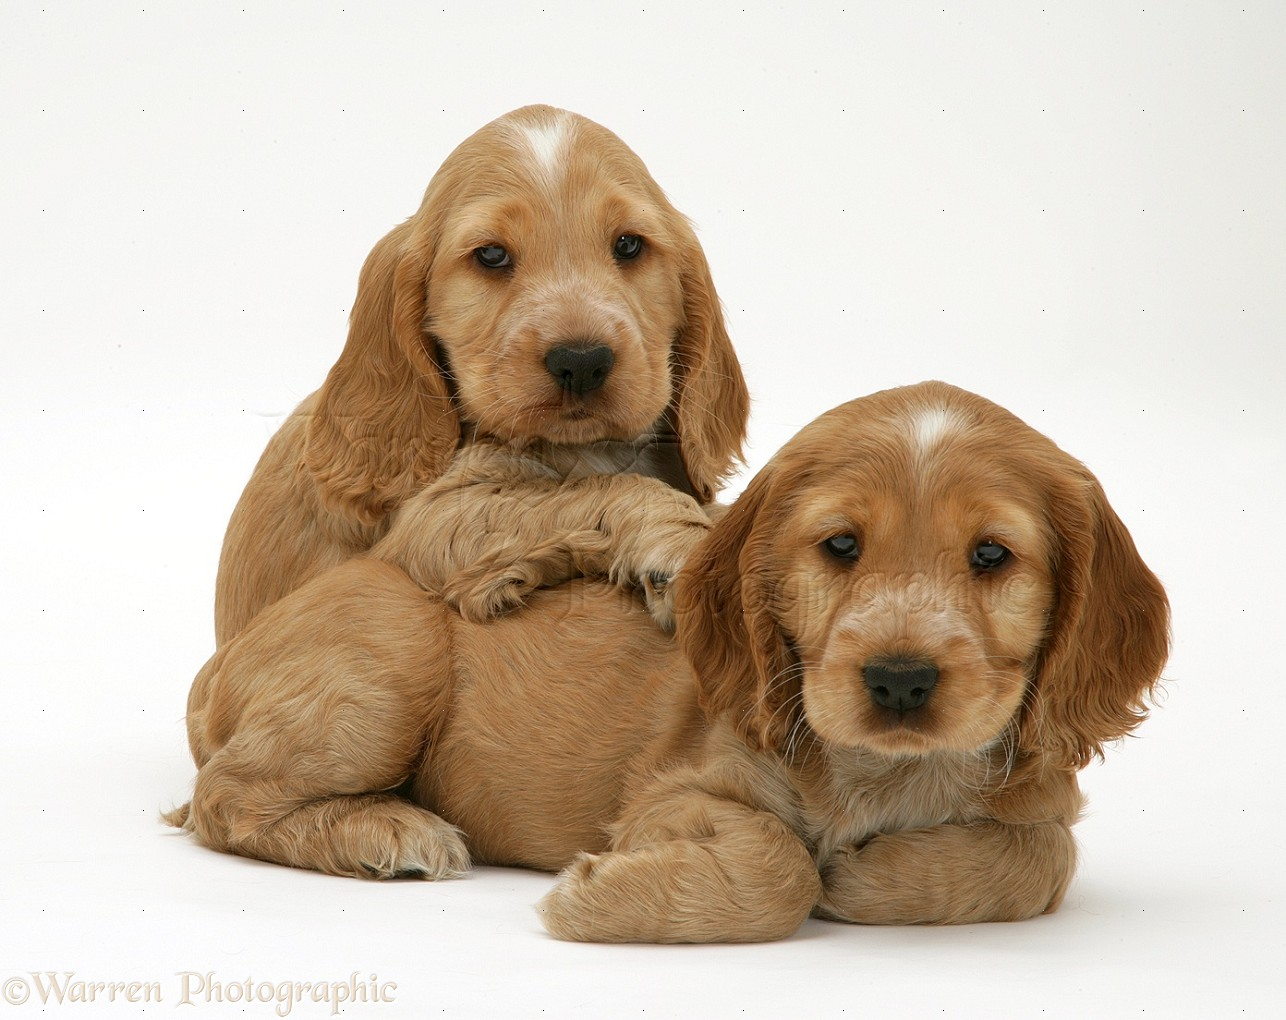 Russian Spaniel Puppies: Russian Cute Little Puppy Cute Puppies Fanpop Fanclubs Breed